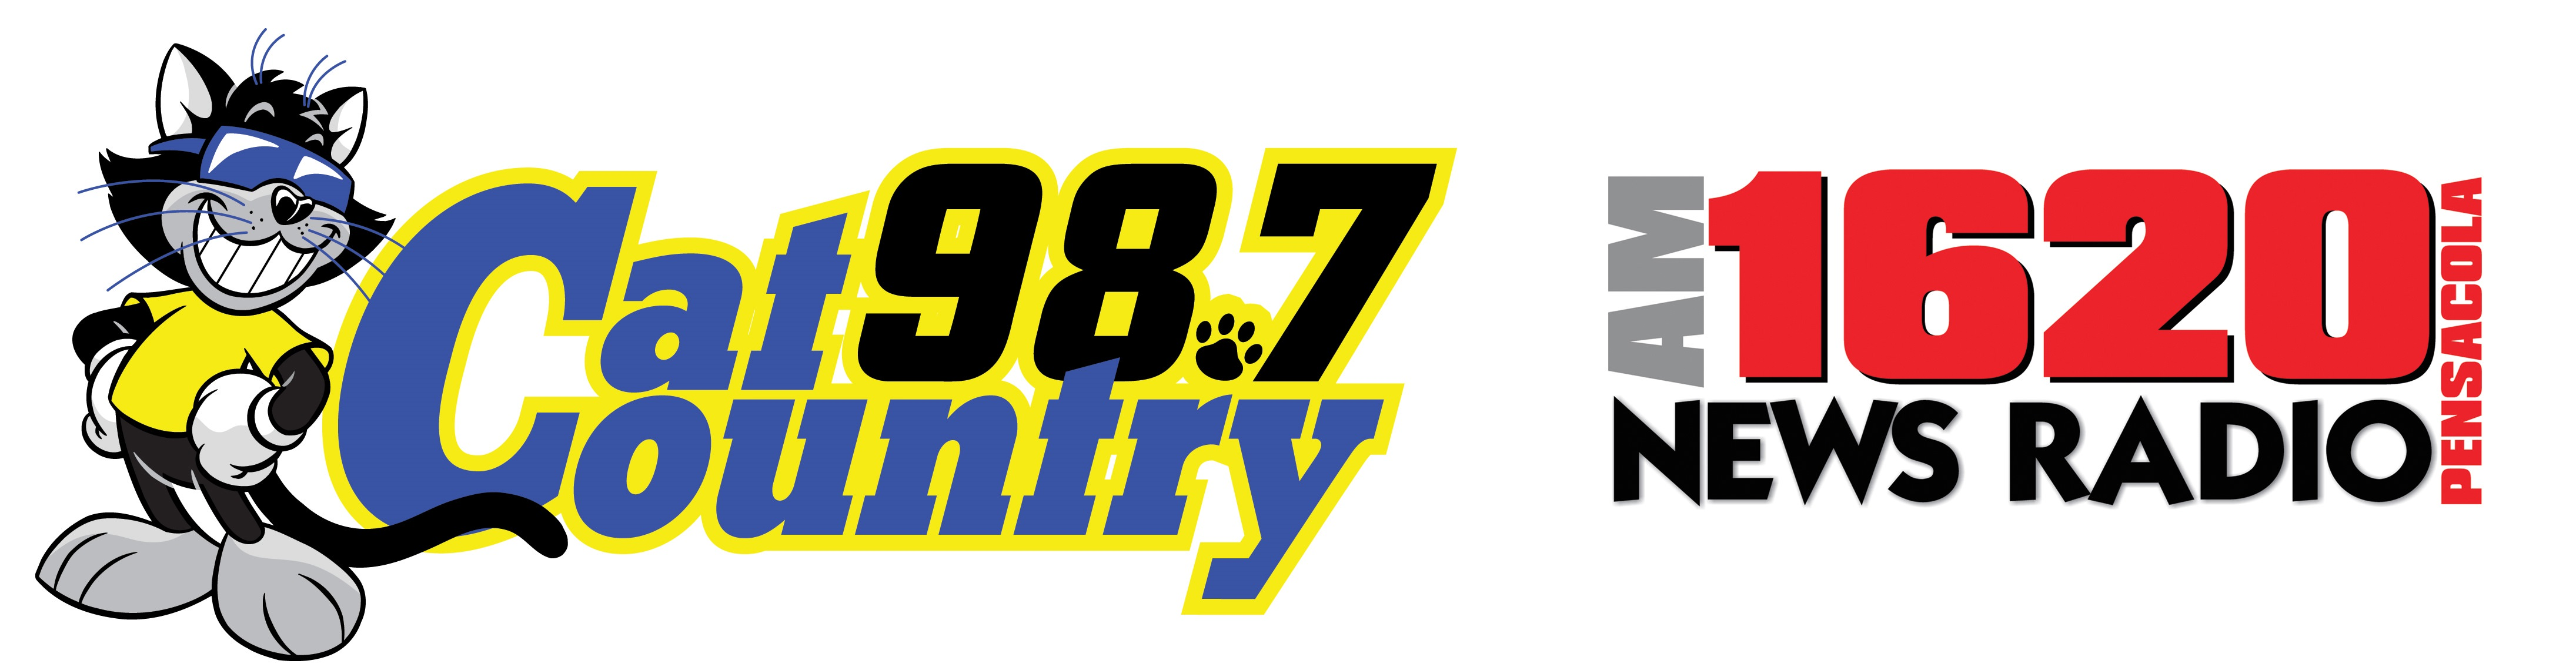 Cat Country 98.7 | News Radio 1620